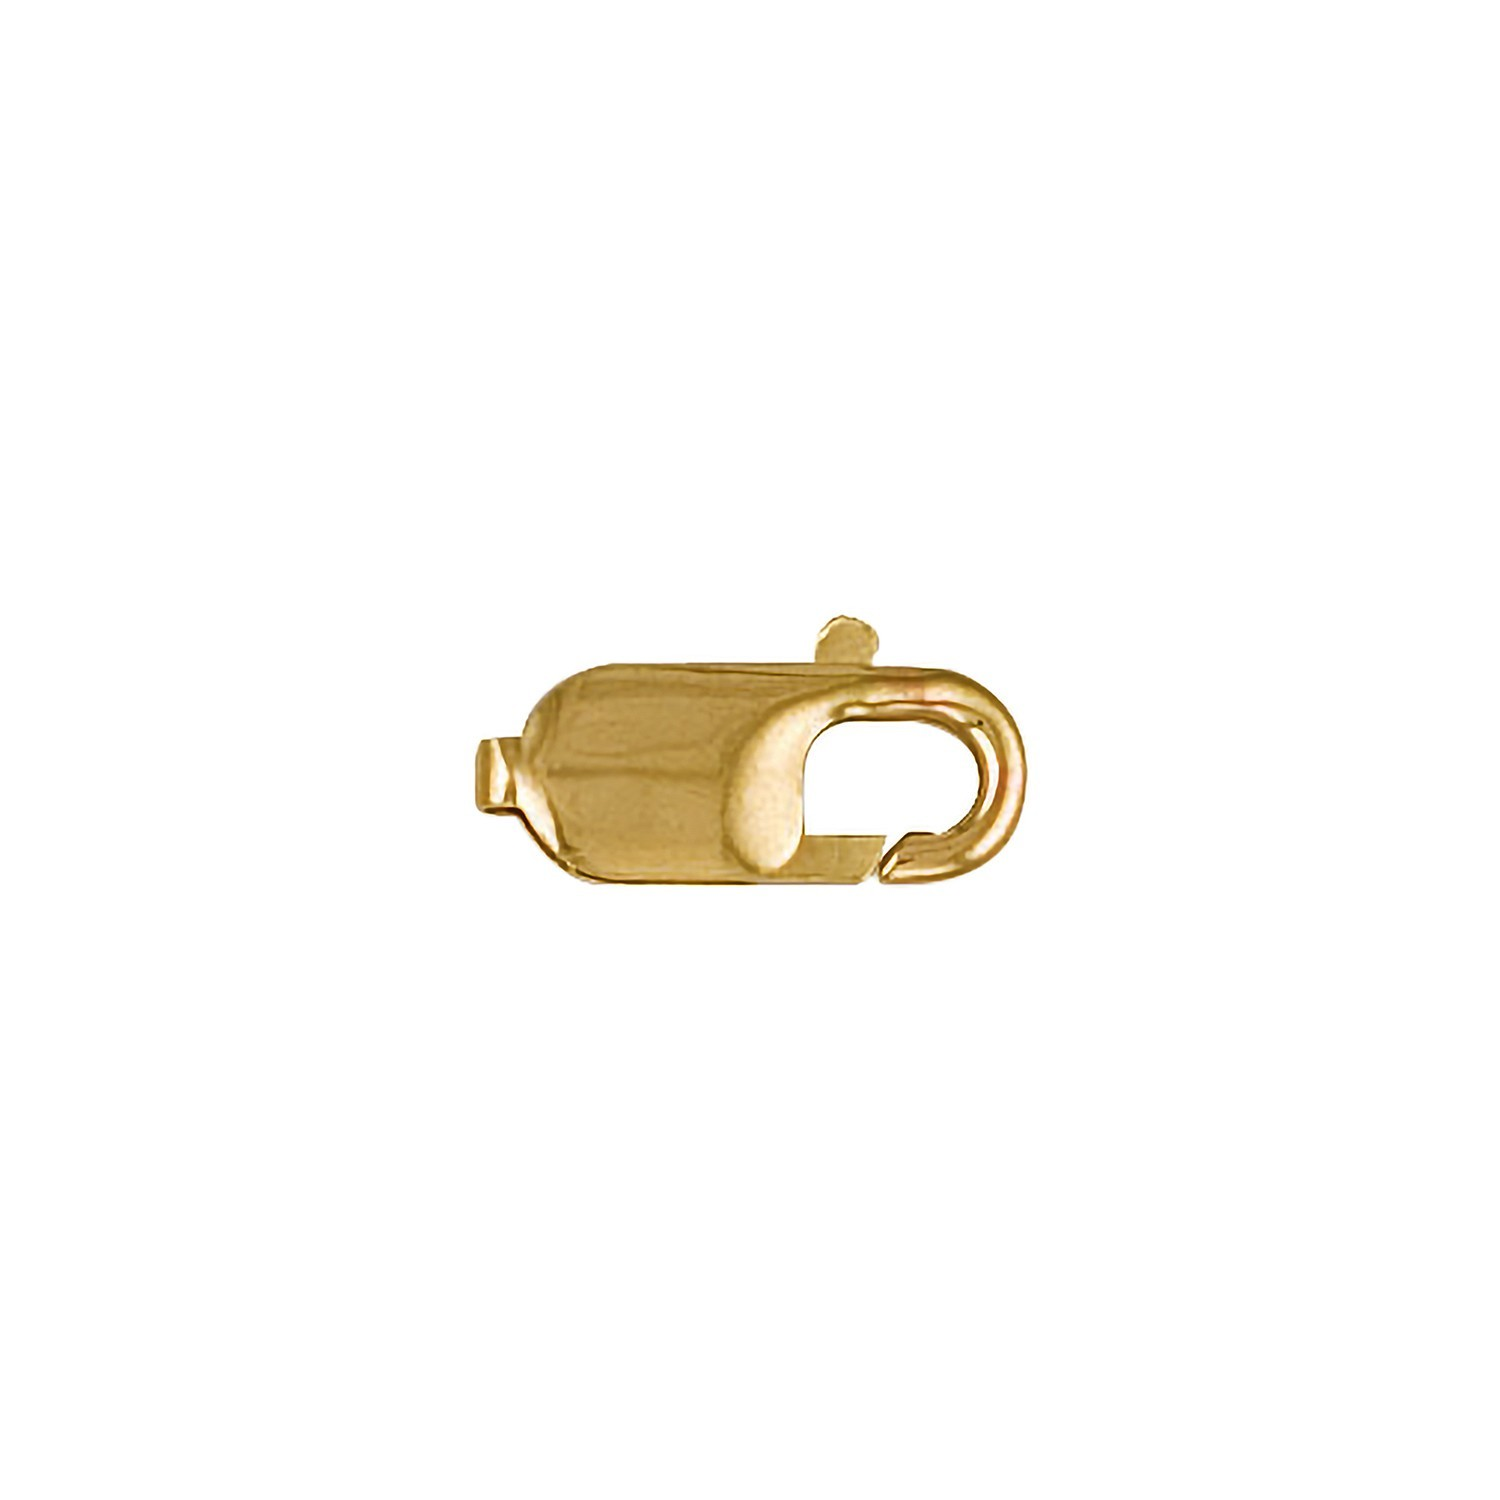 Y/G 11mm Trigger Clasp (Pack of 3)